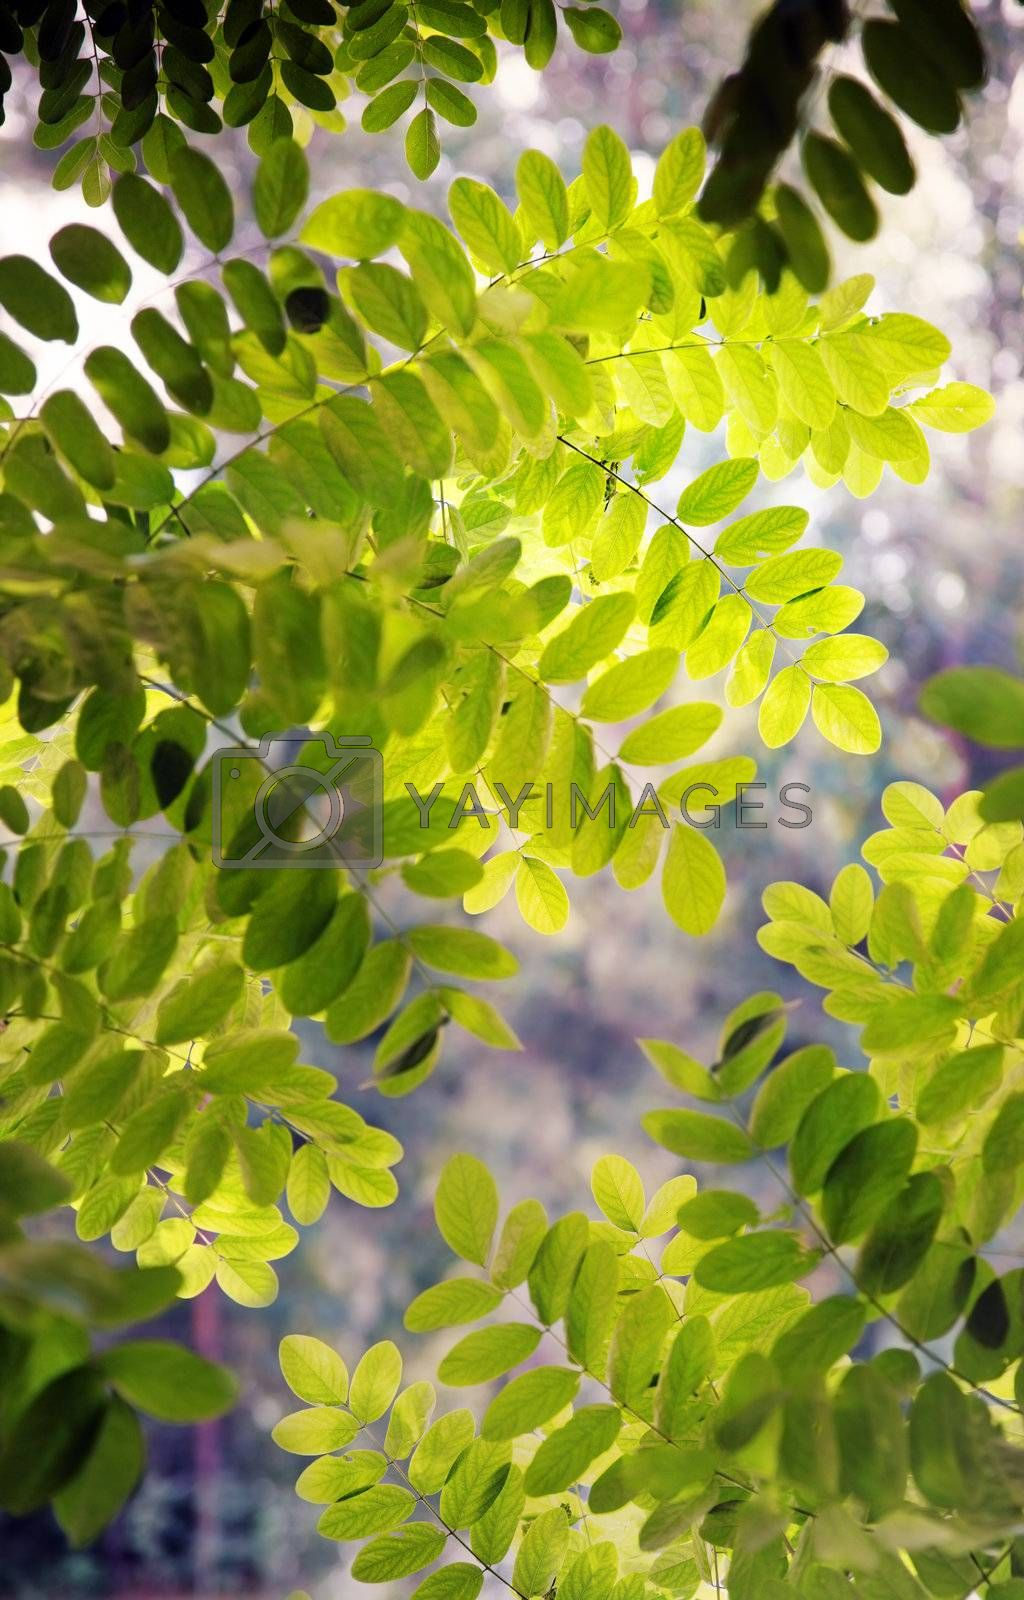 Green leaves outdoors during spring day